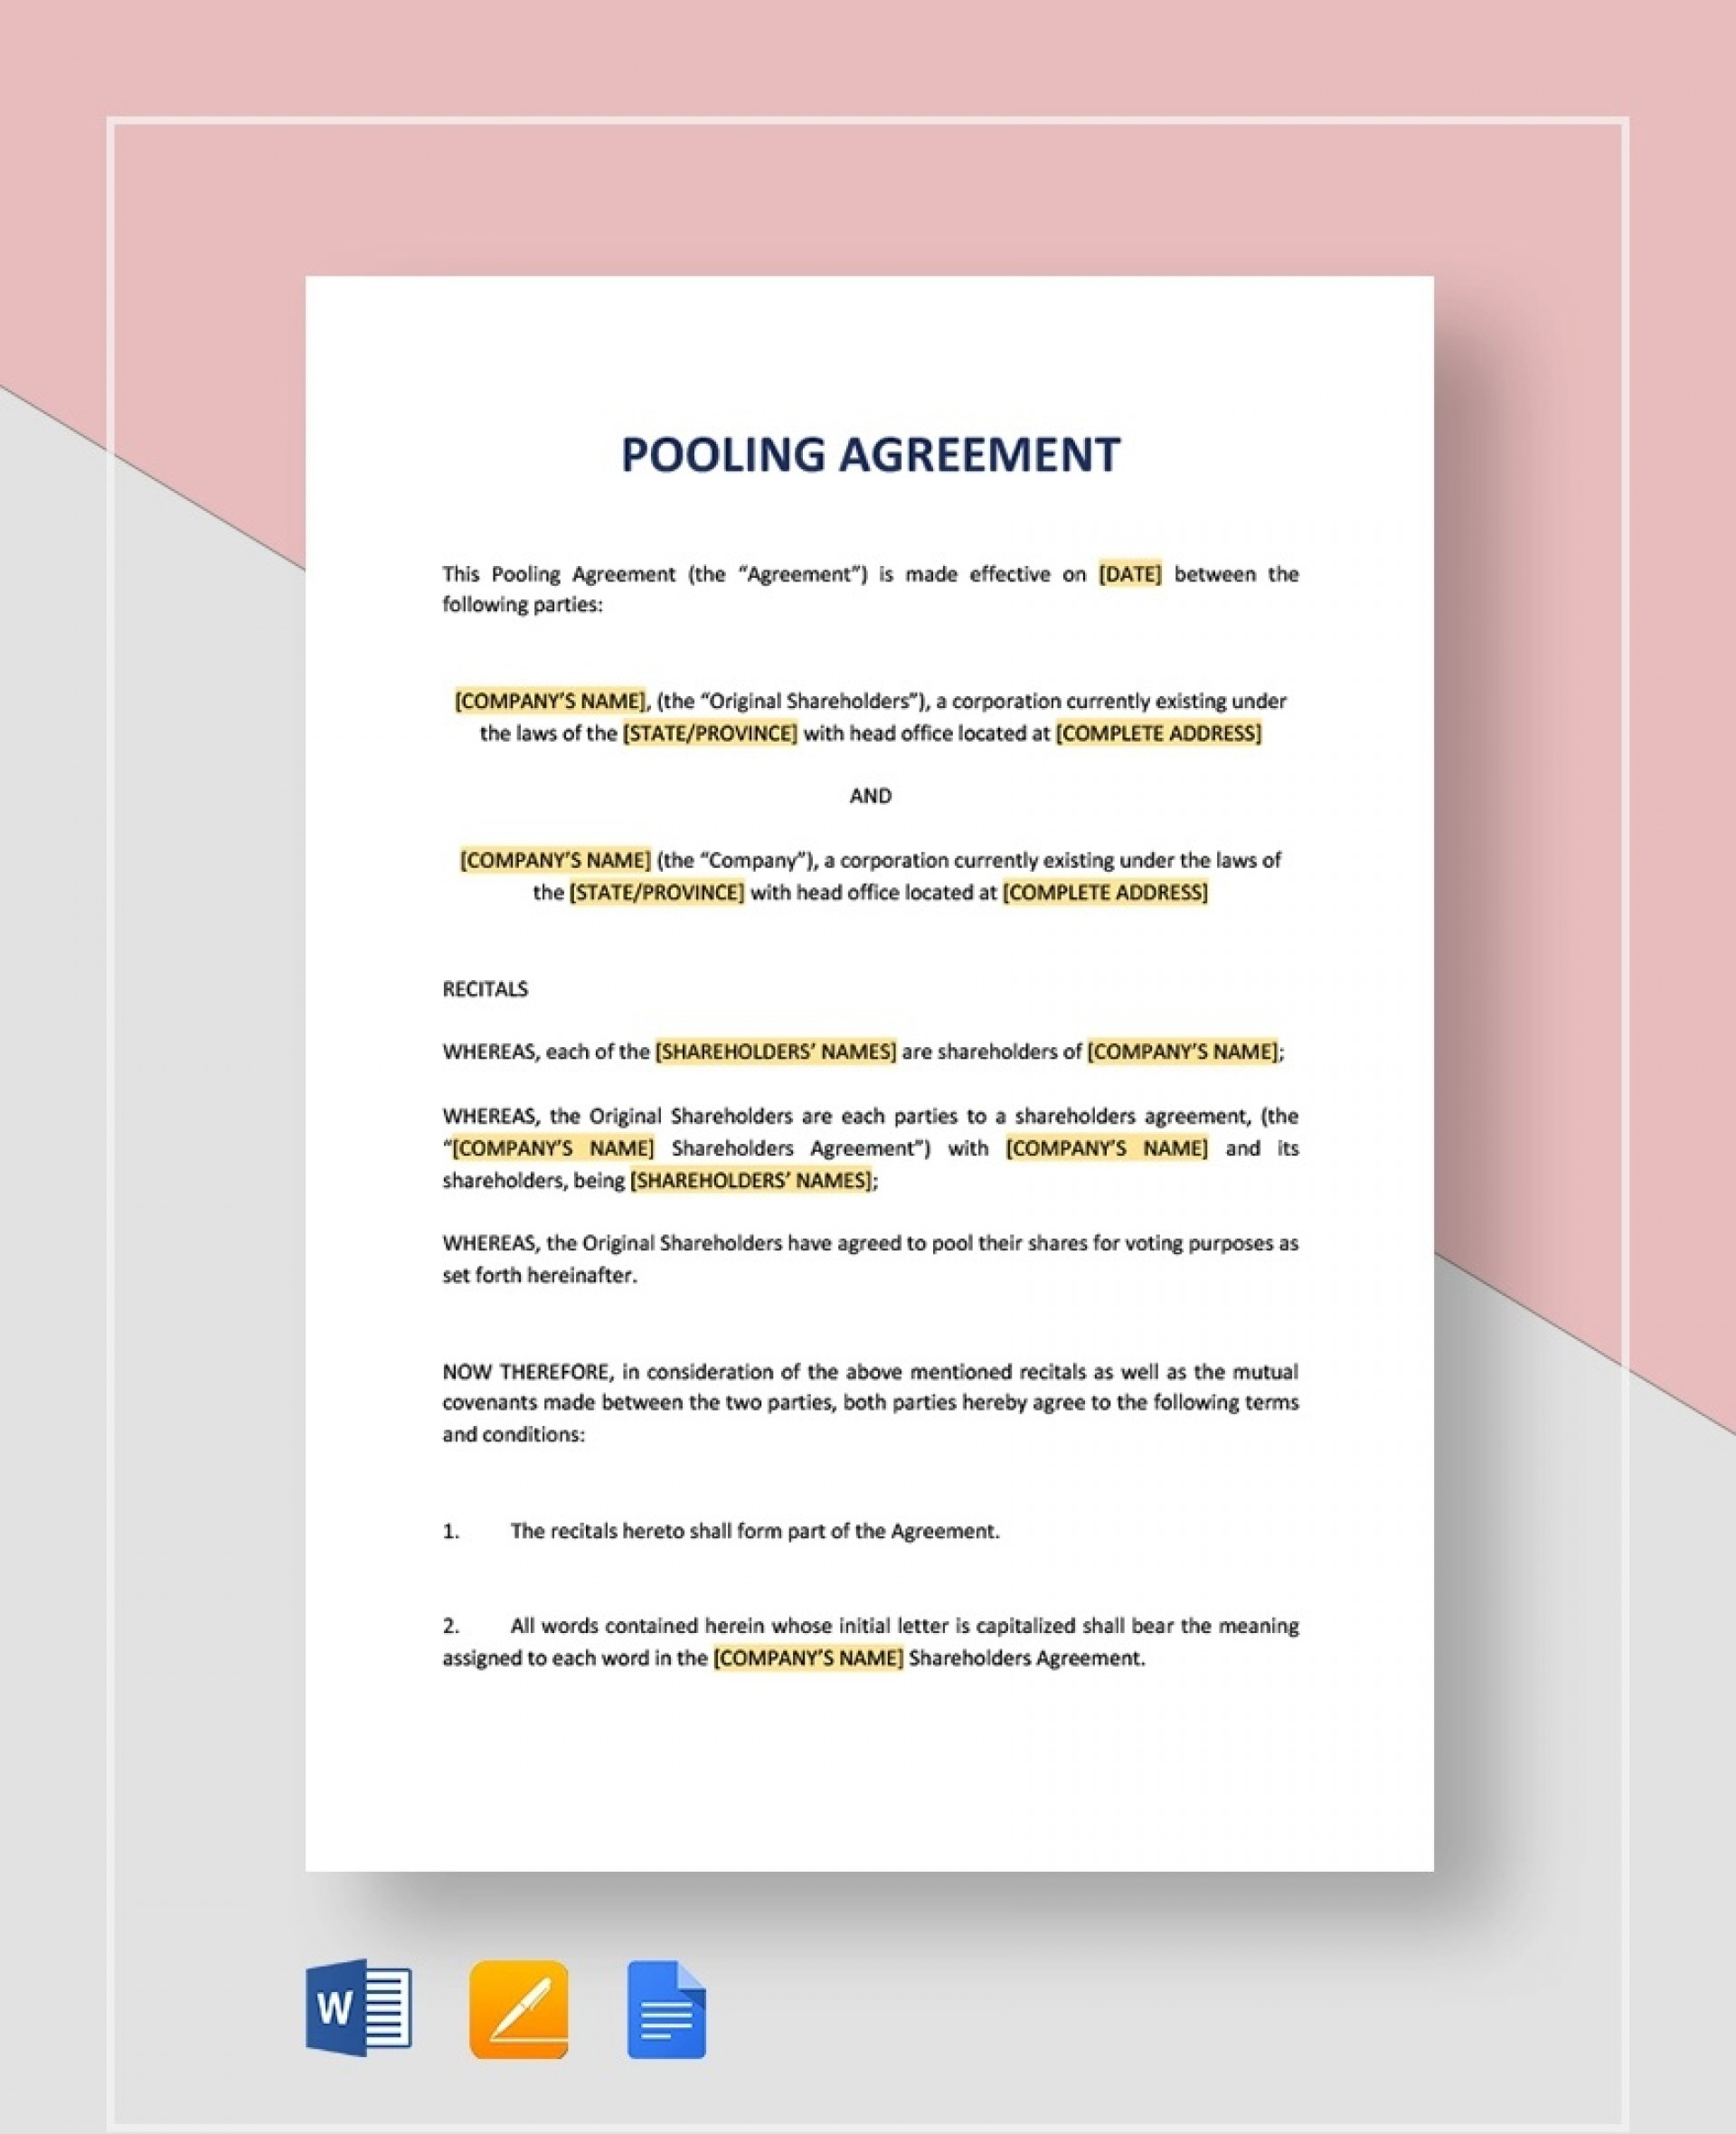 Pooling Agreement Jpg  Template Cash1920